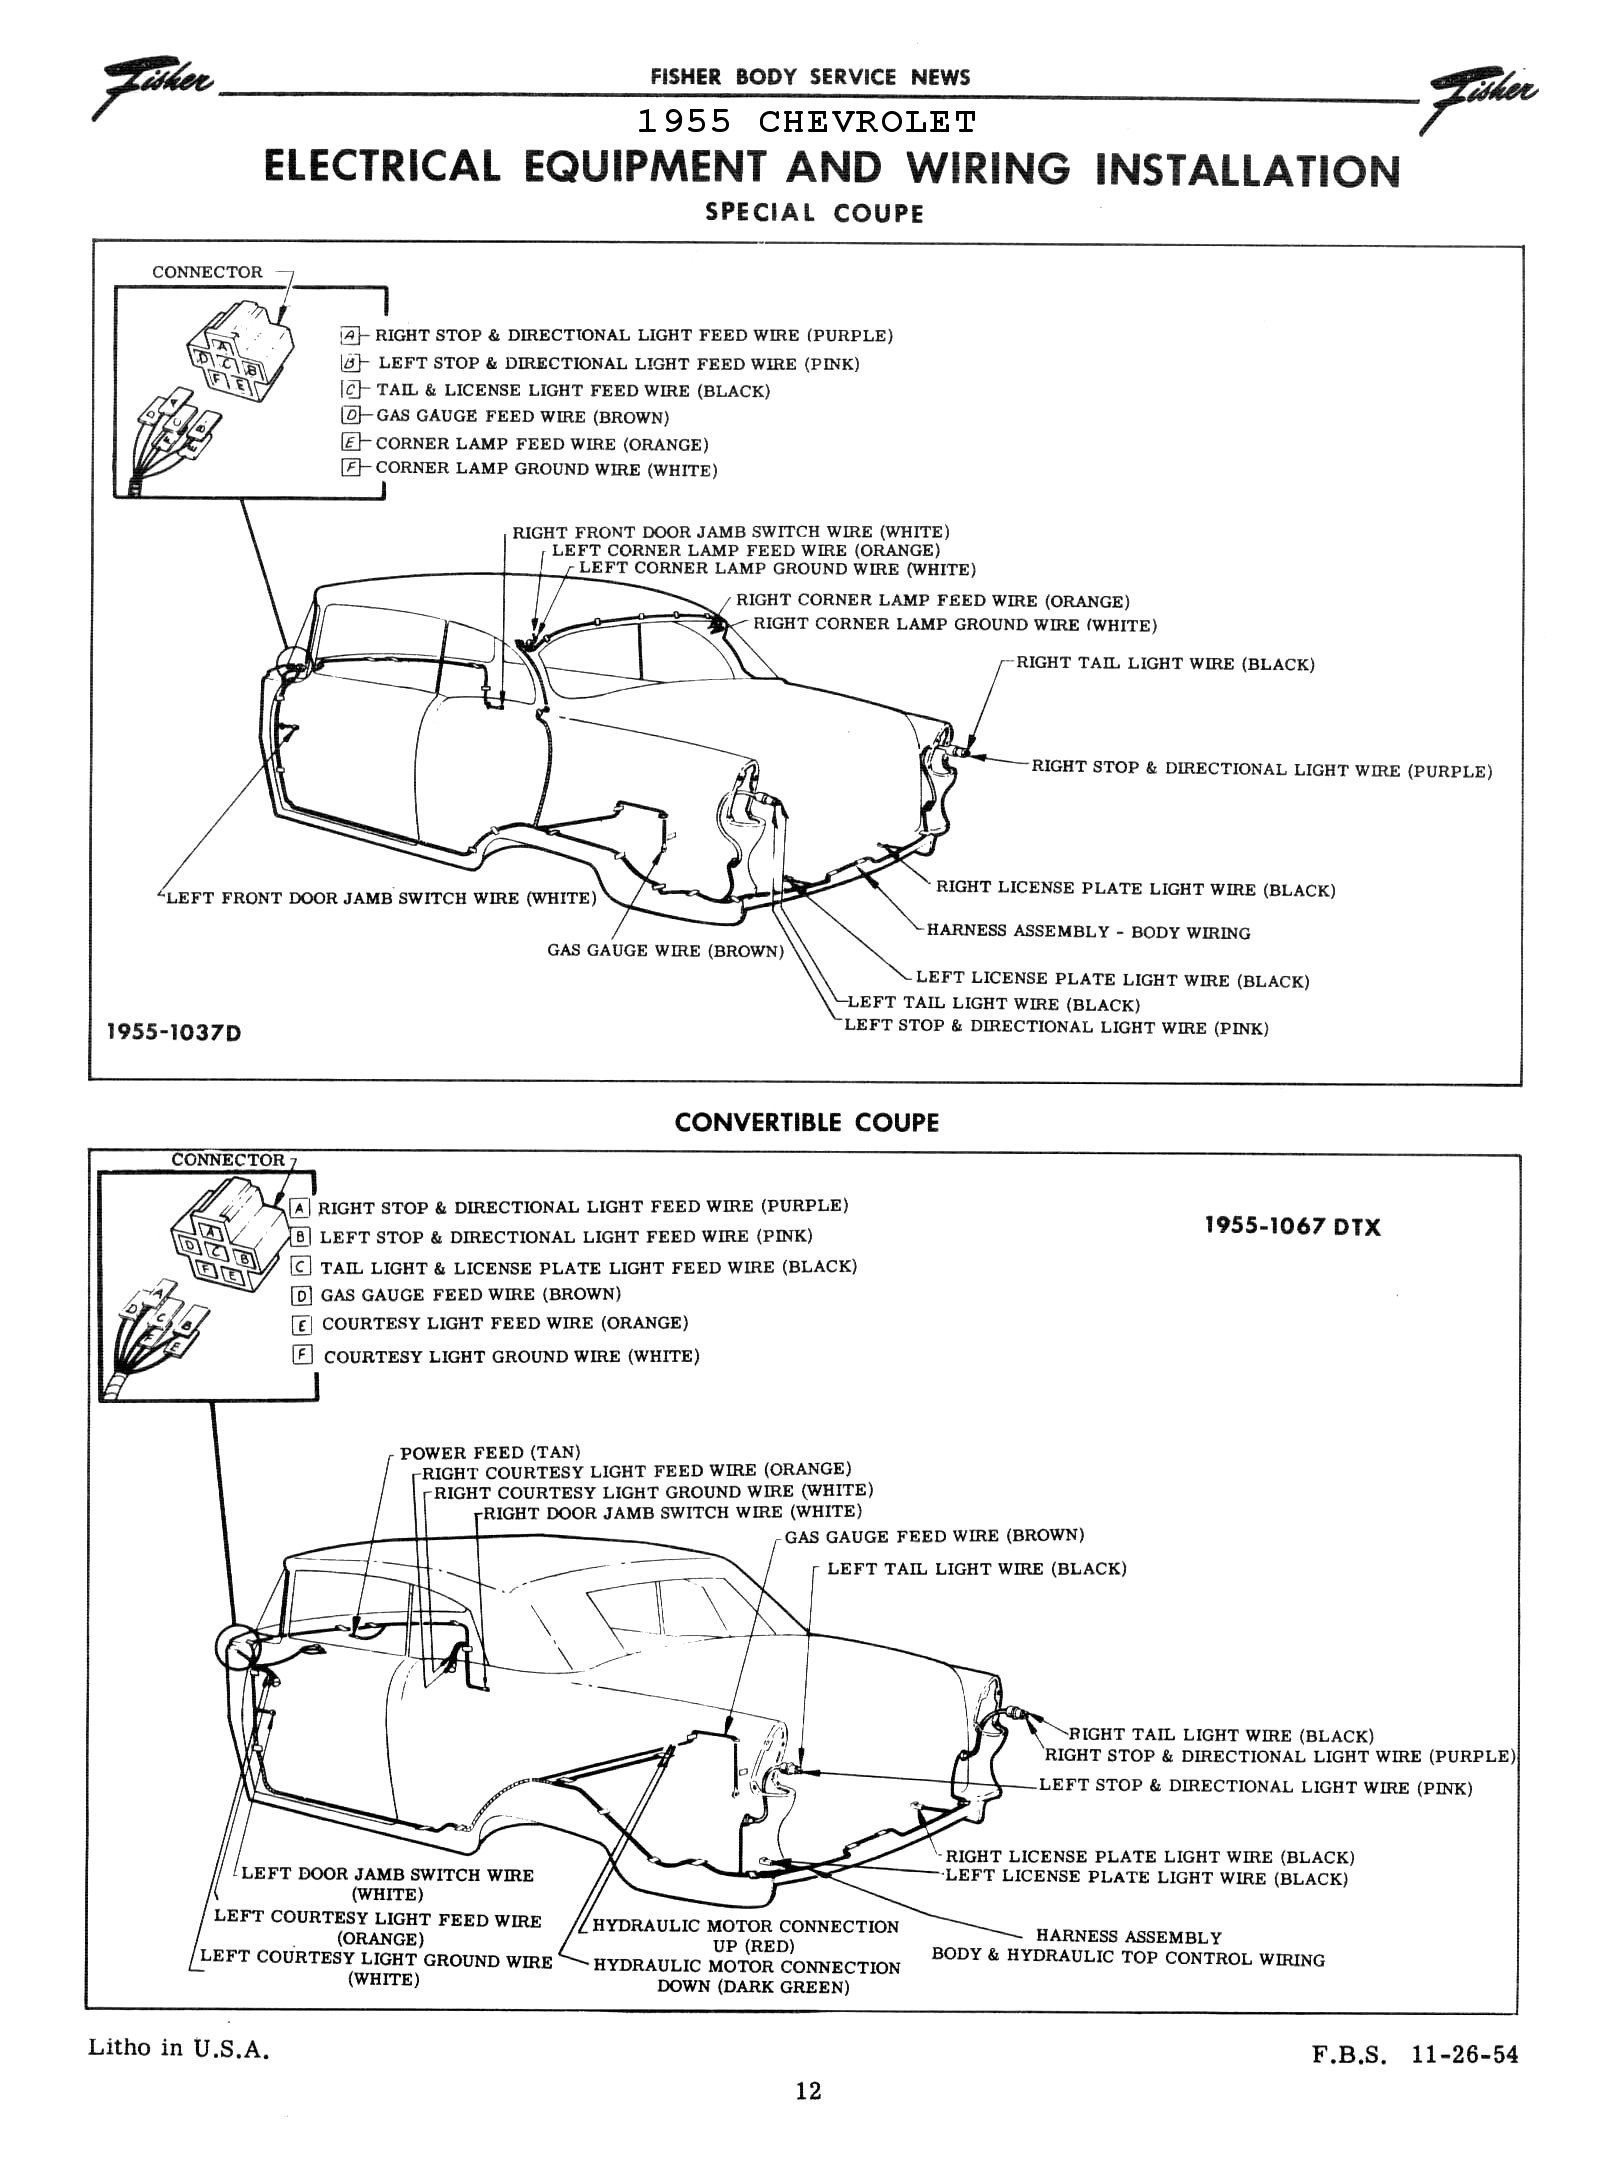 55fsn140612 chevy wiring diagrams 1955 chevy horn wiring diagram at gsmx.co